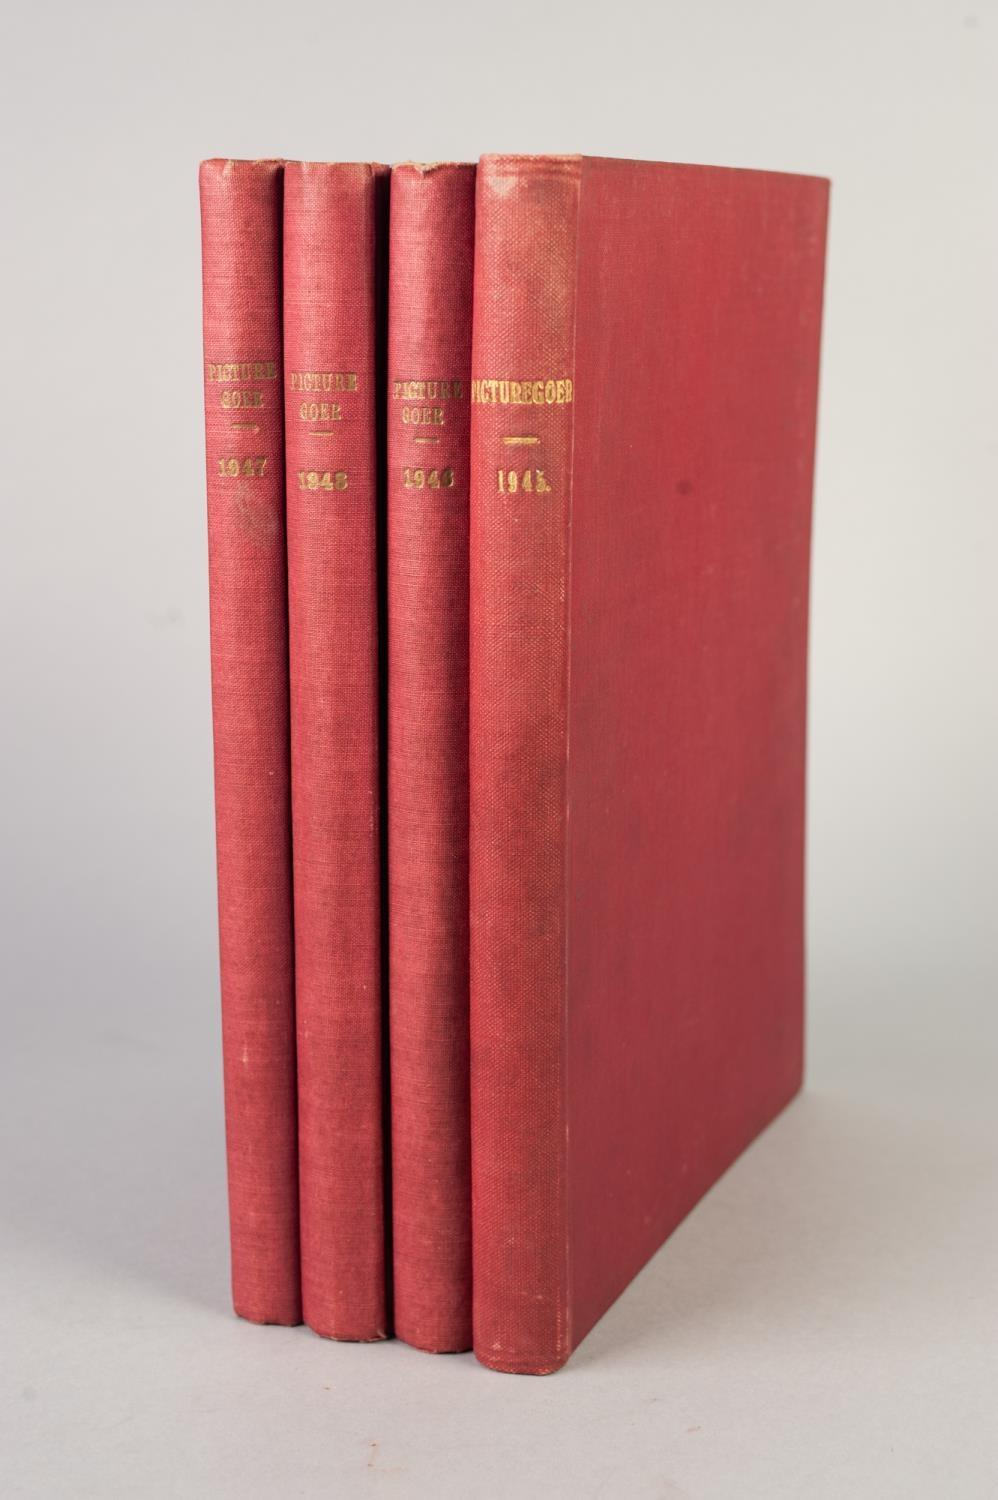 SMALL SELECTION OF PICTUREGOER ANNUALS, 1940s, bound in red cloth, 1945, 1946, 1947, 1948, various